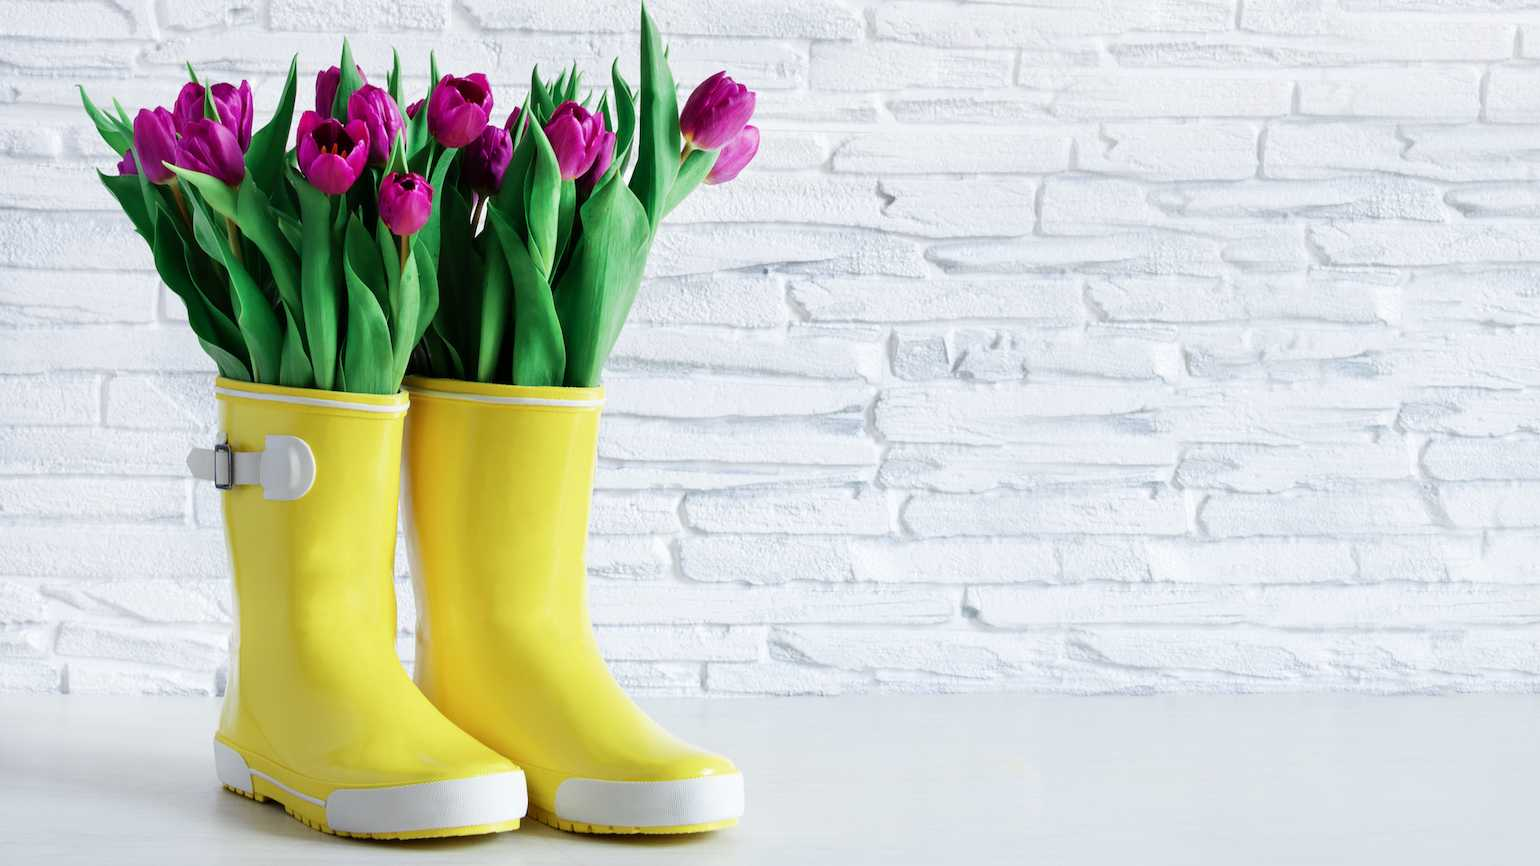 Rainboots with flowers